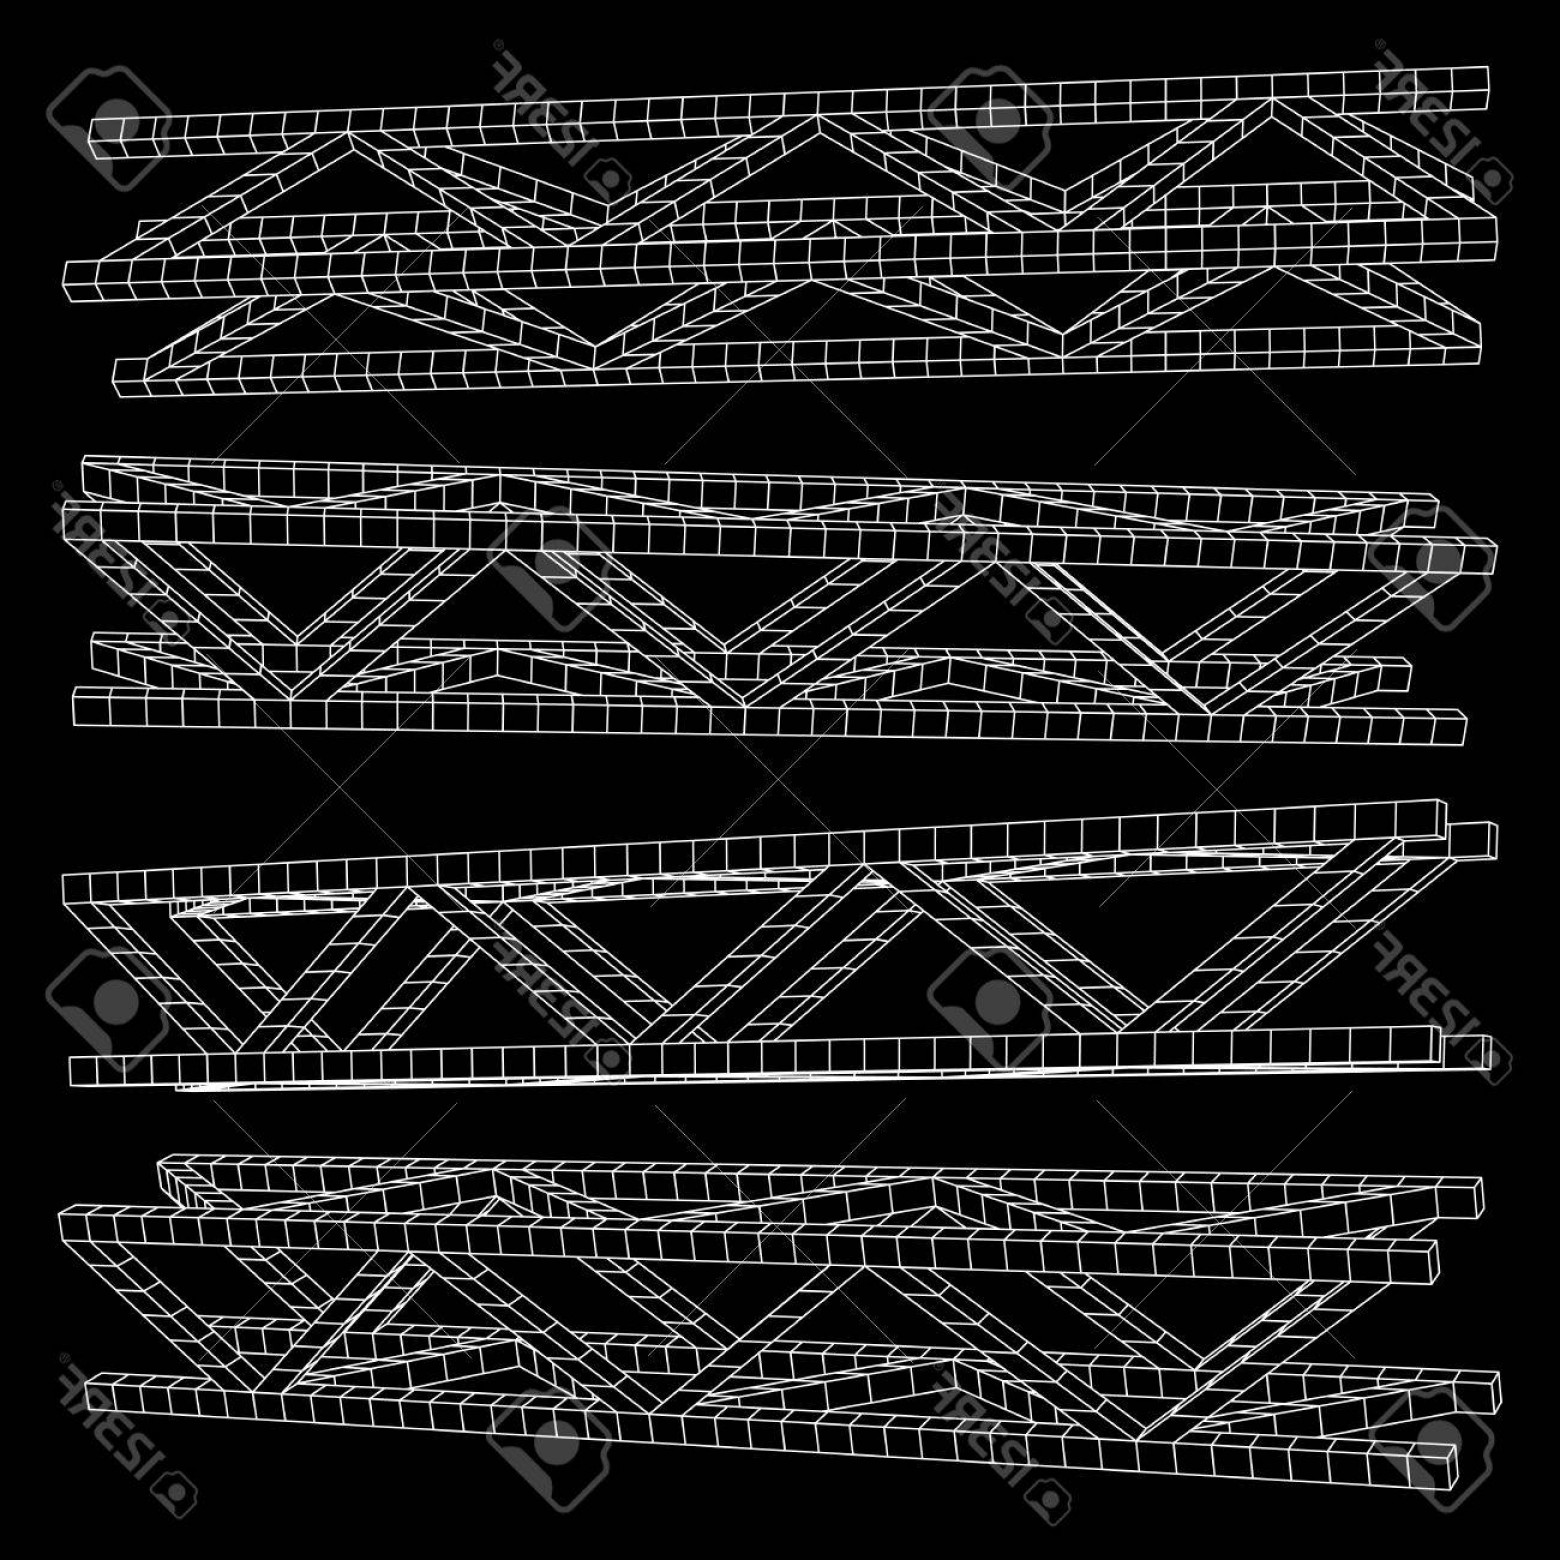 Aluminum Truss Design Vector: Photostock Vector Steel Truss Girder Element